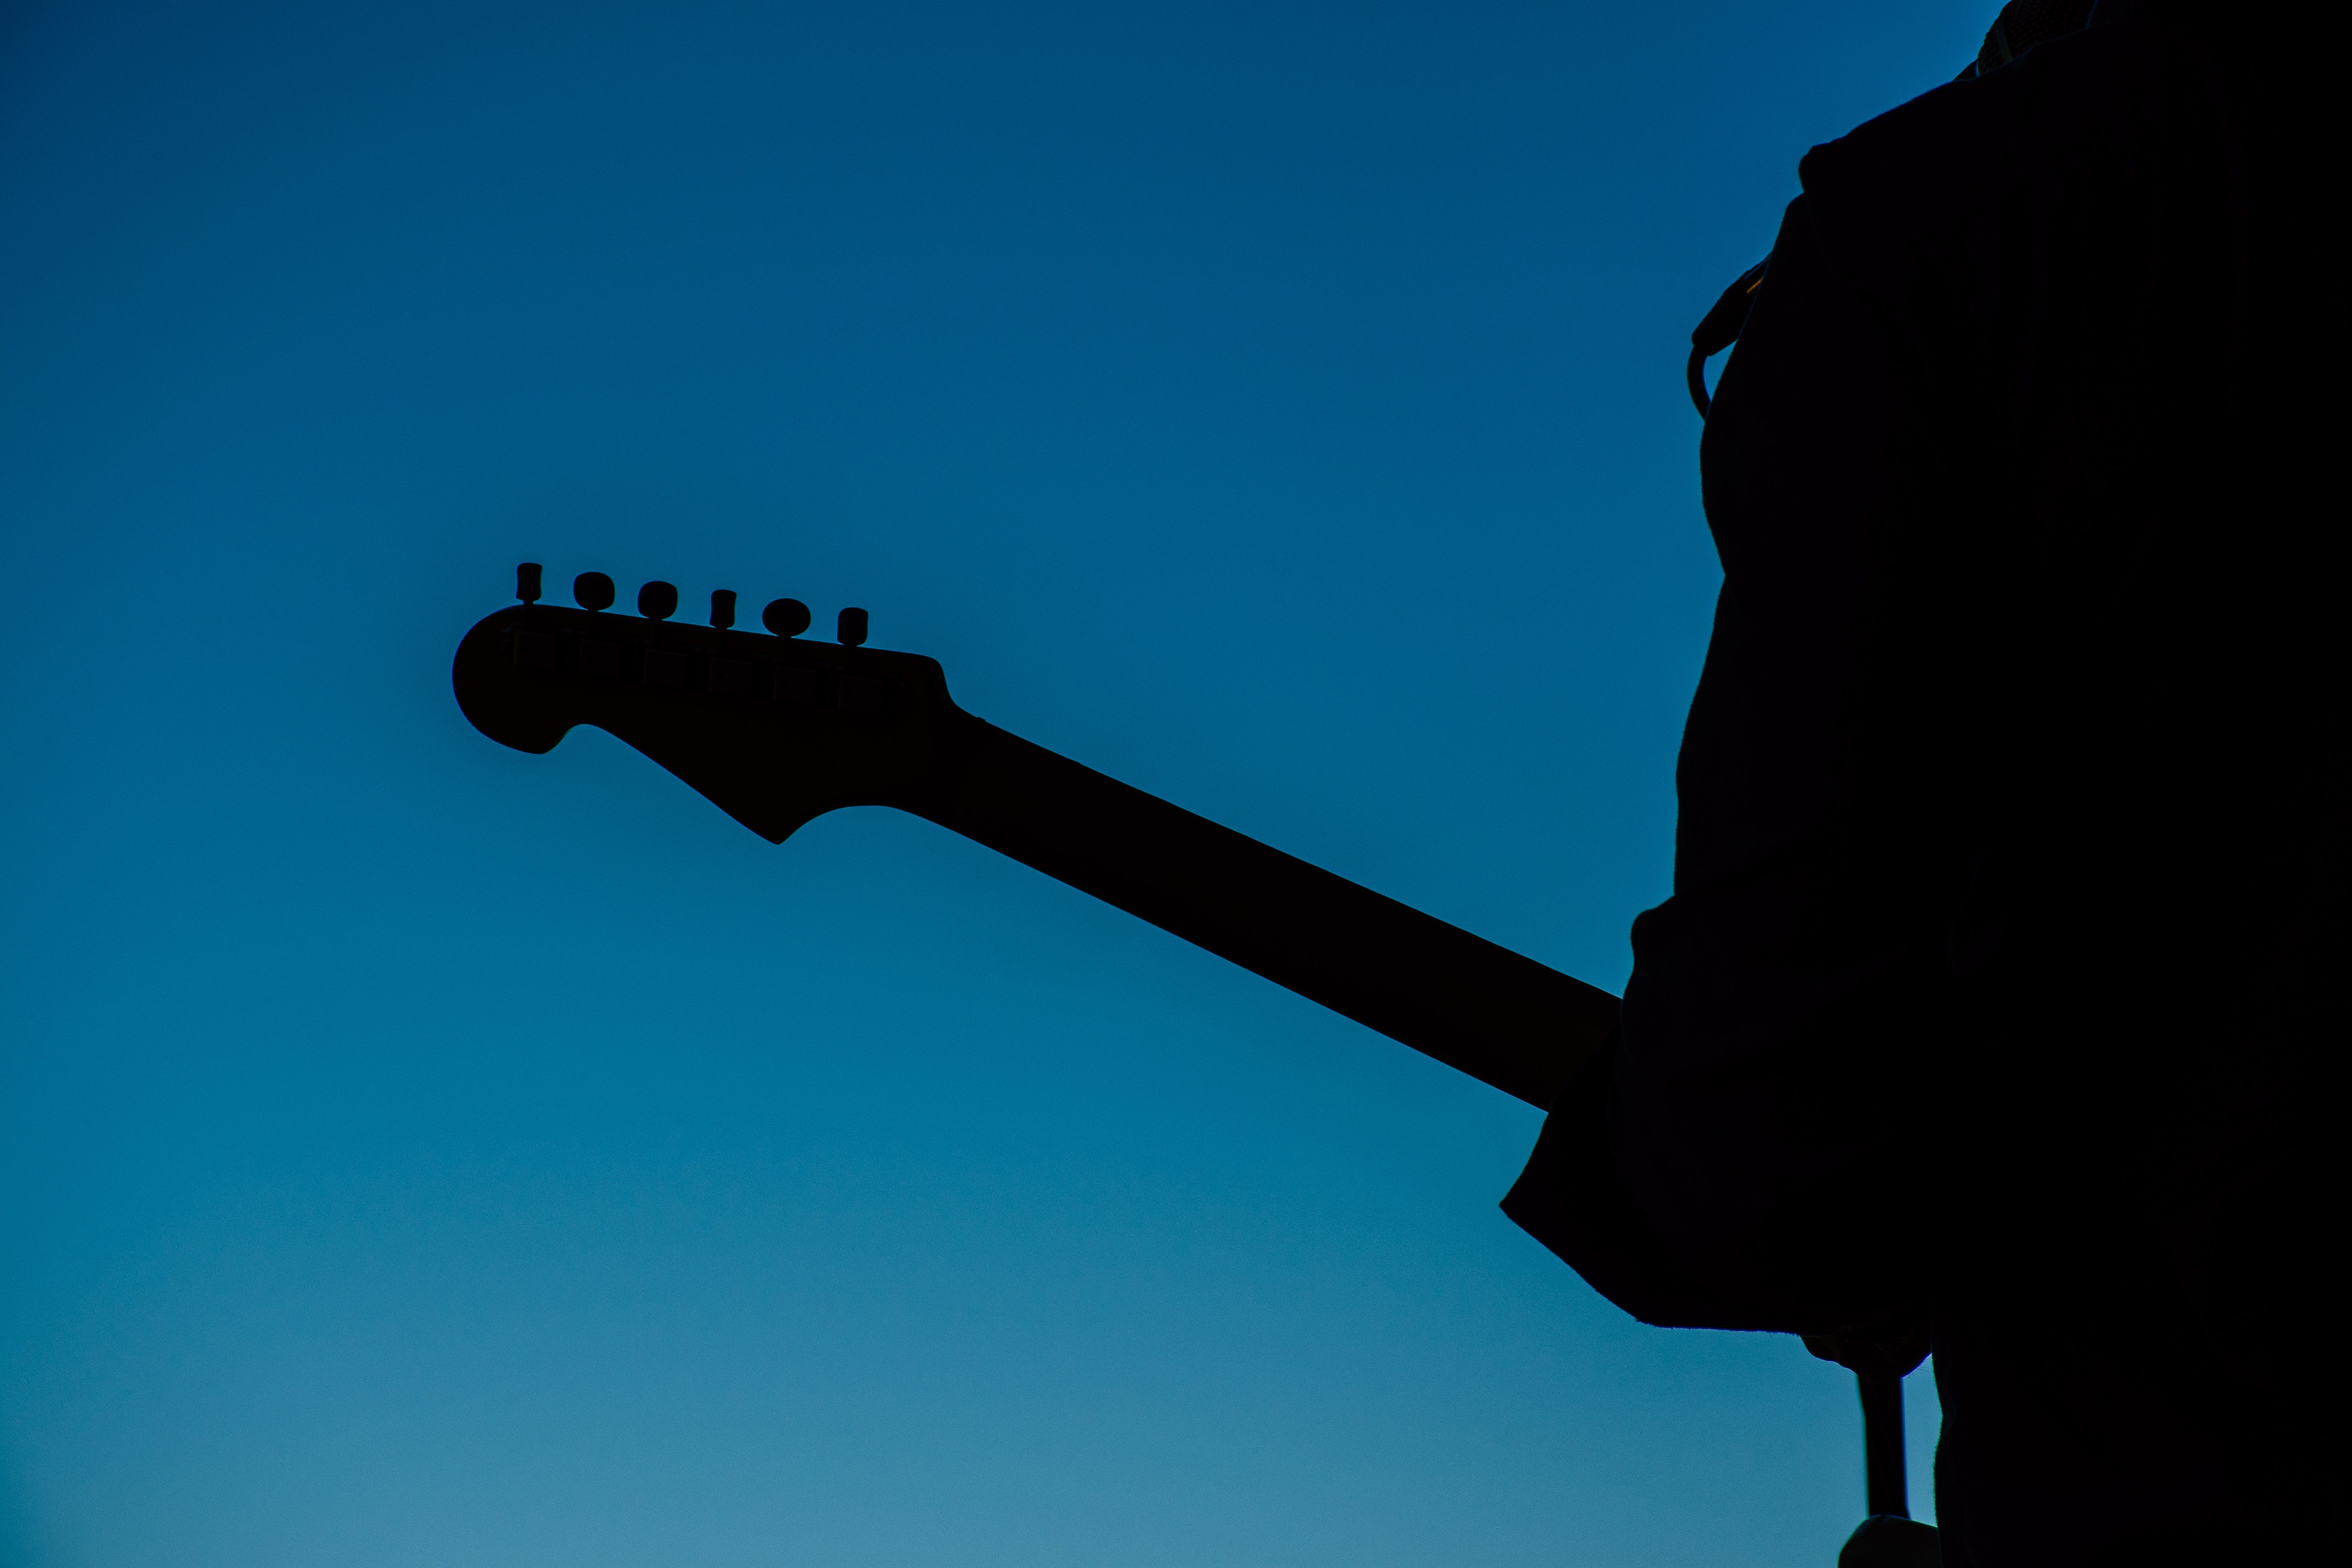 Silhouette Photo of Person Holding Guitar